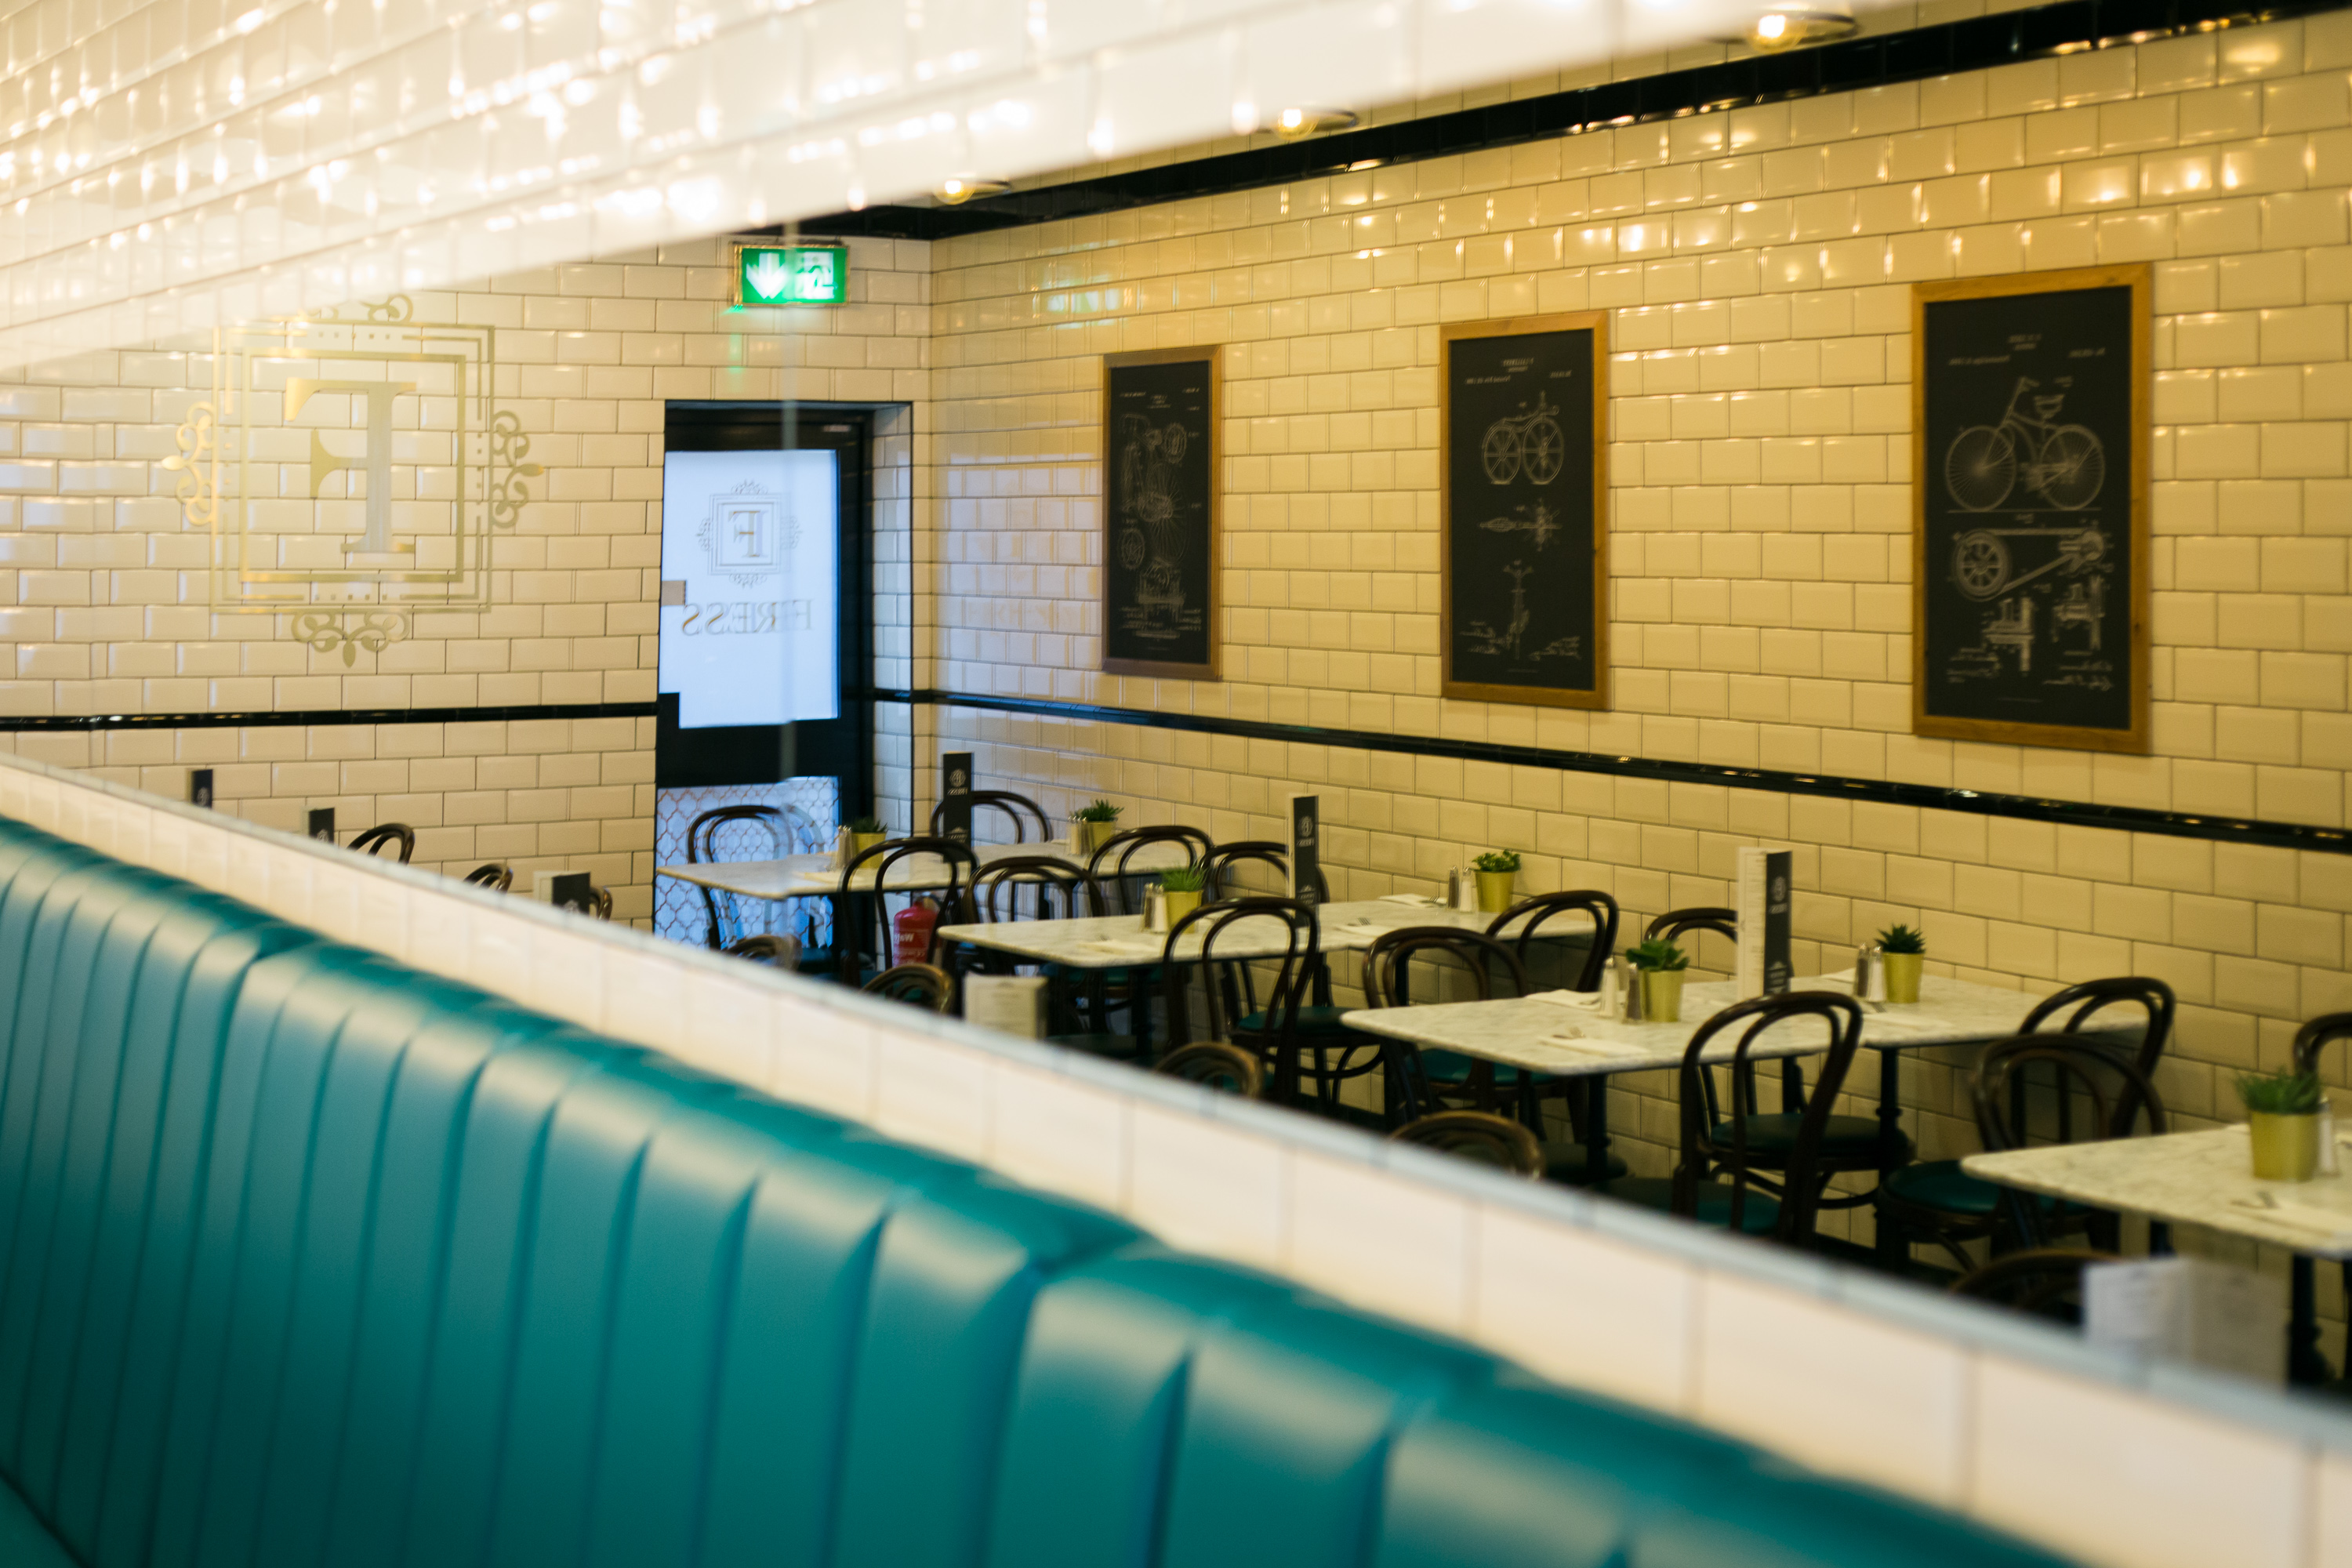 Fress northern quarter manchester restaurant bar reviews